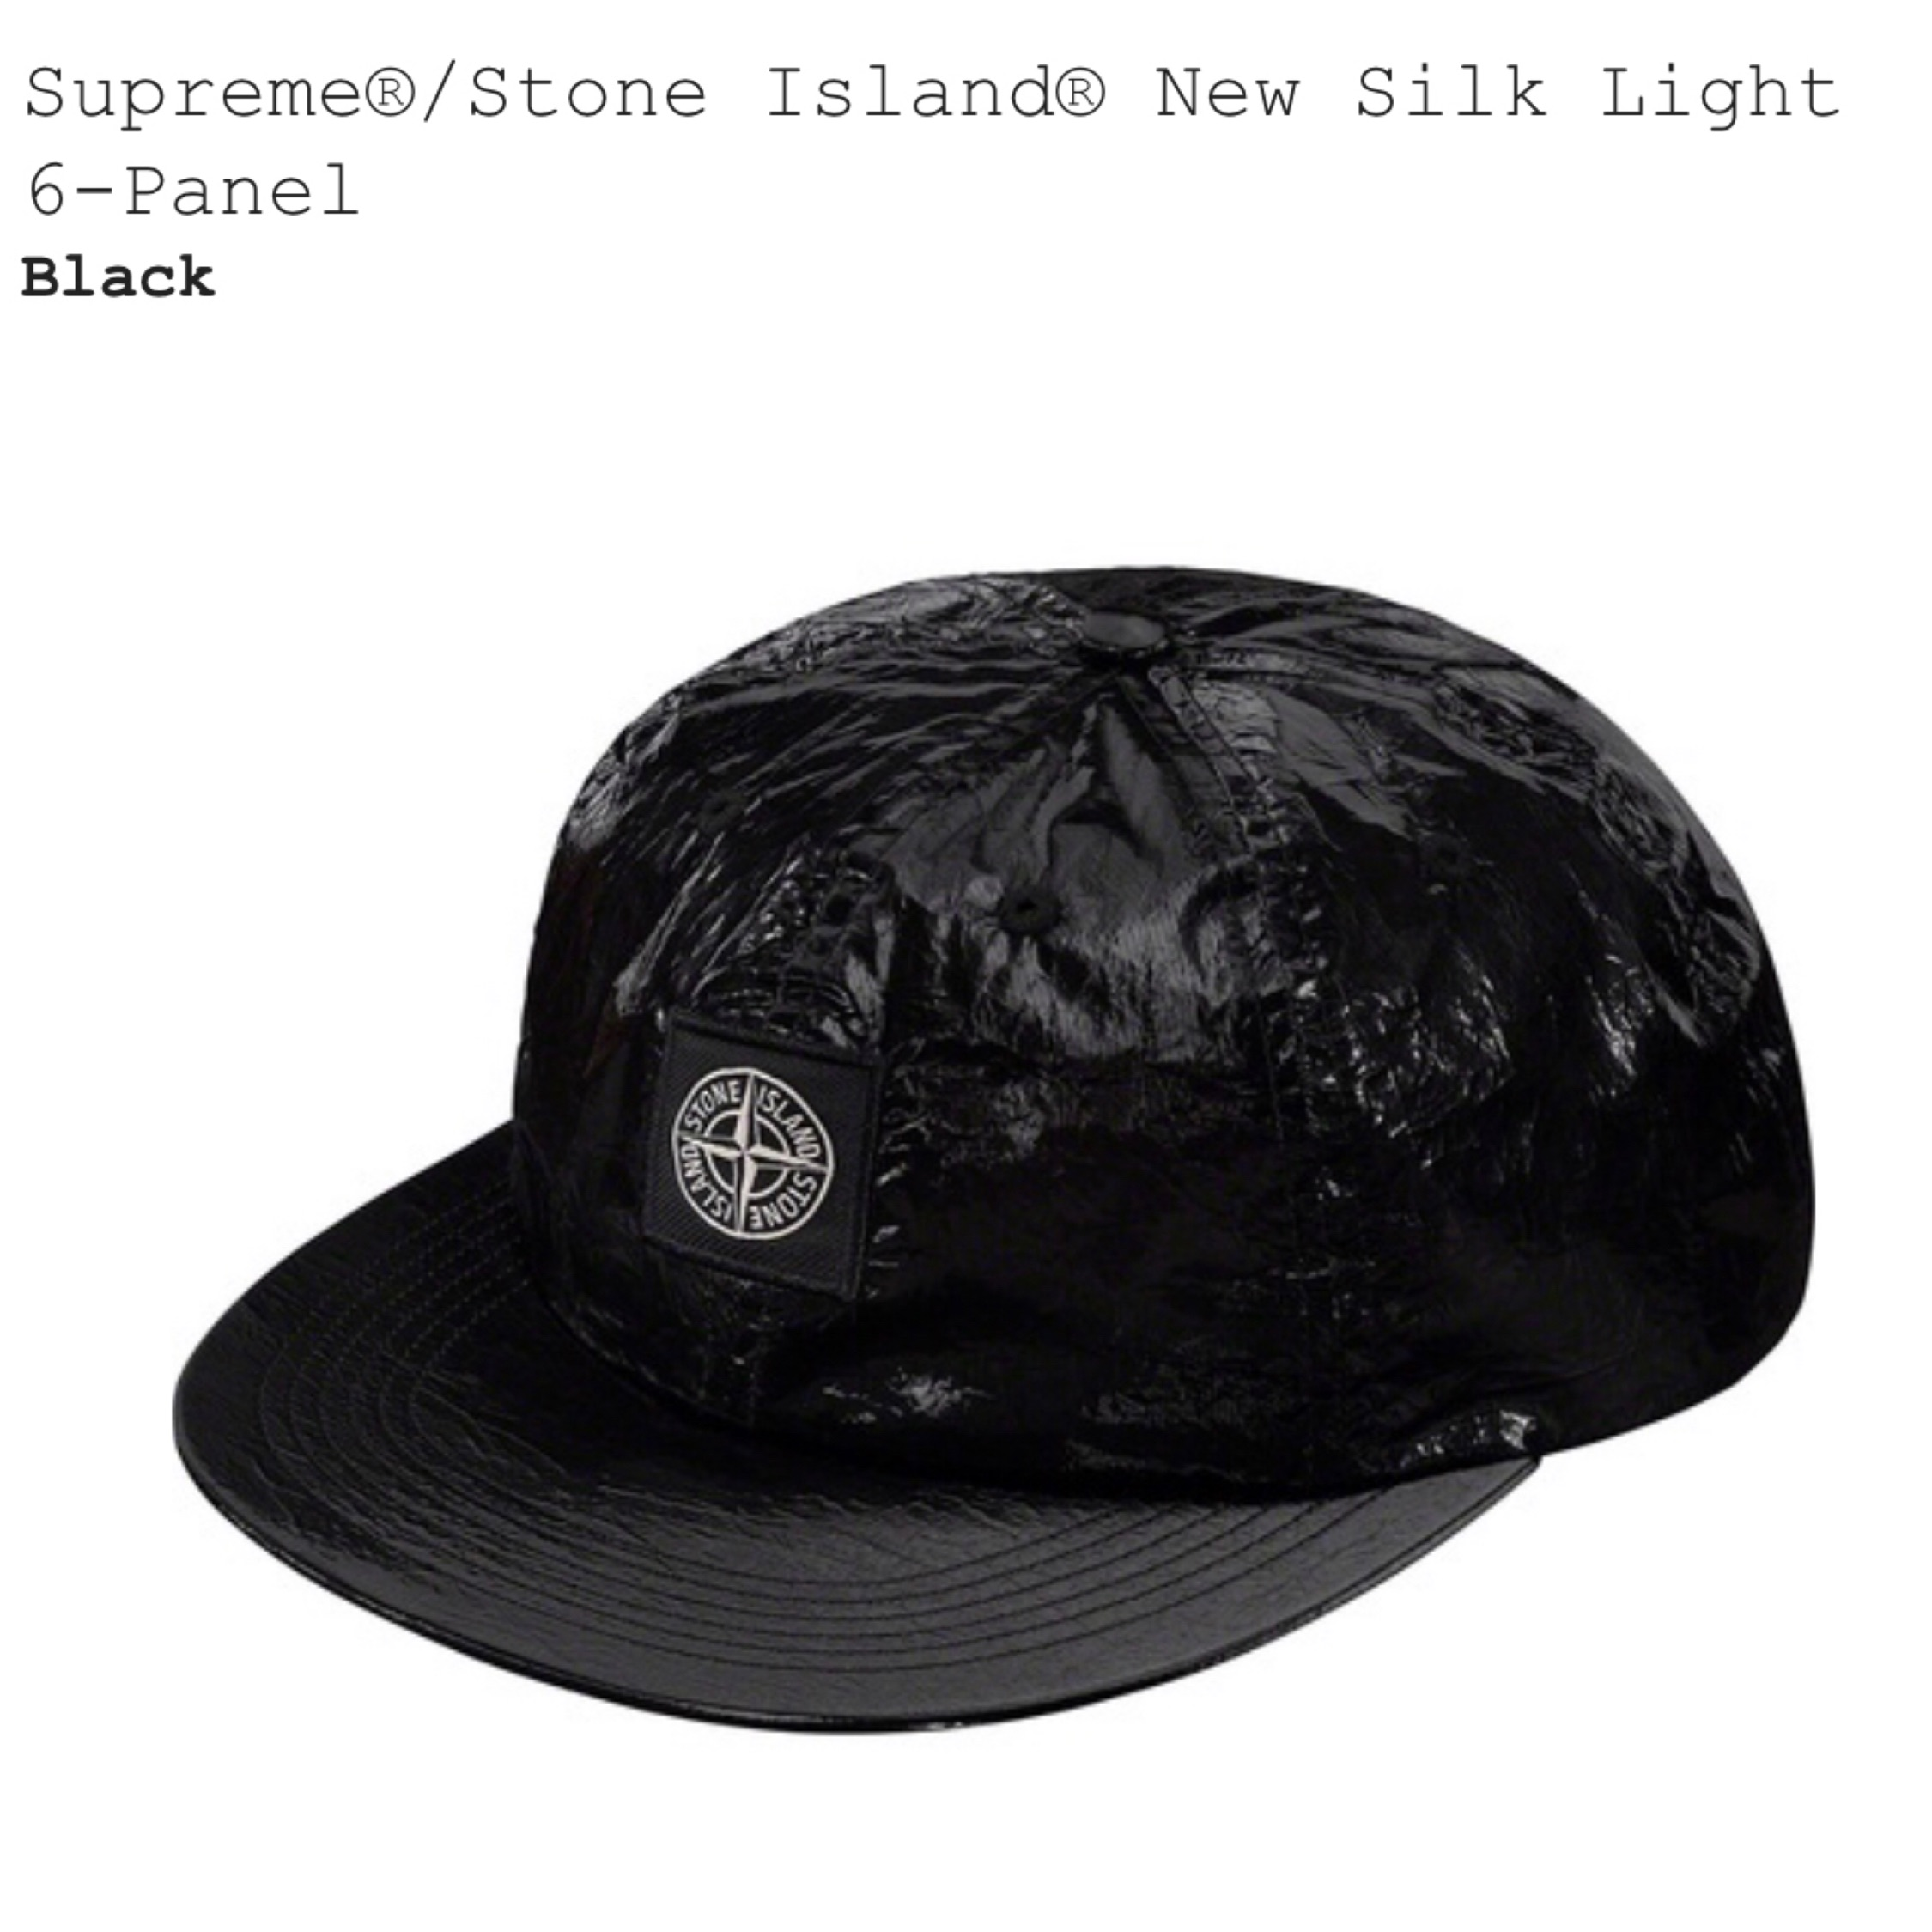 Supreme X Stone Island, New Silk Light 6-Panel